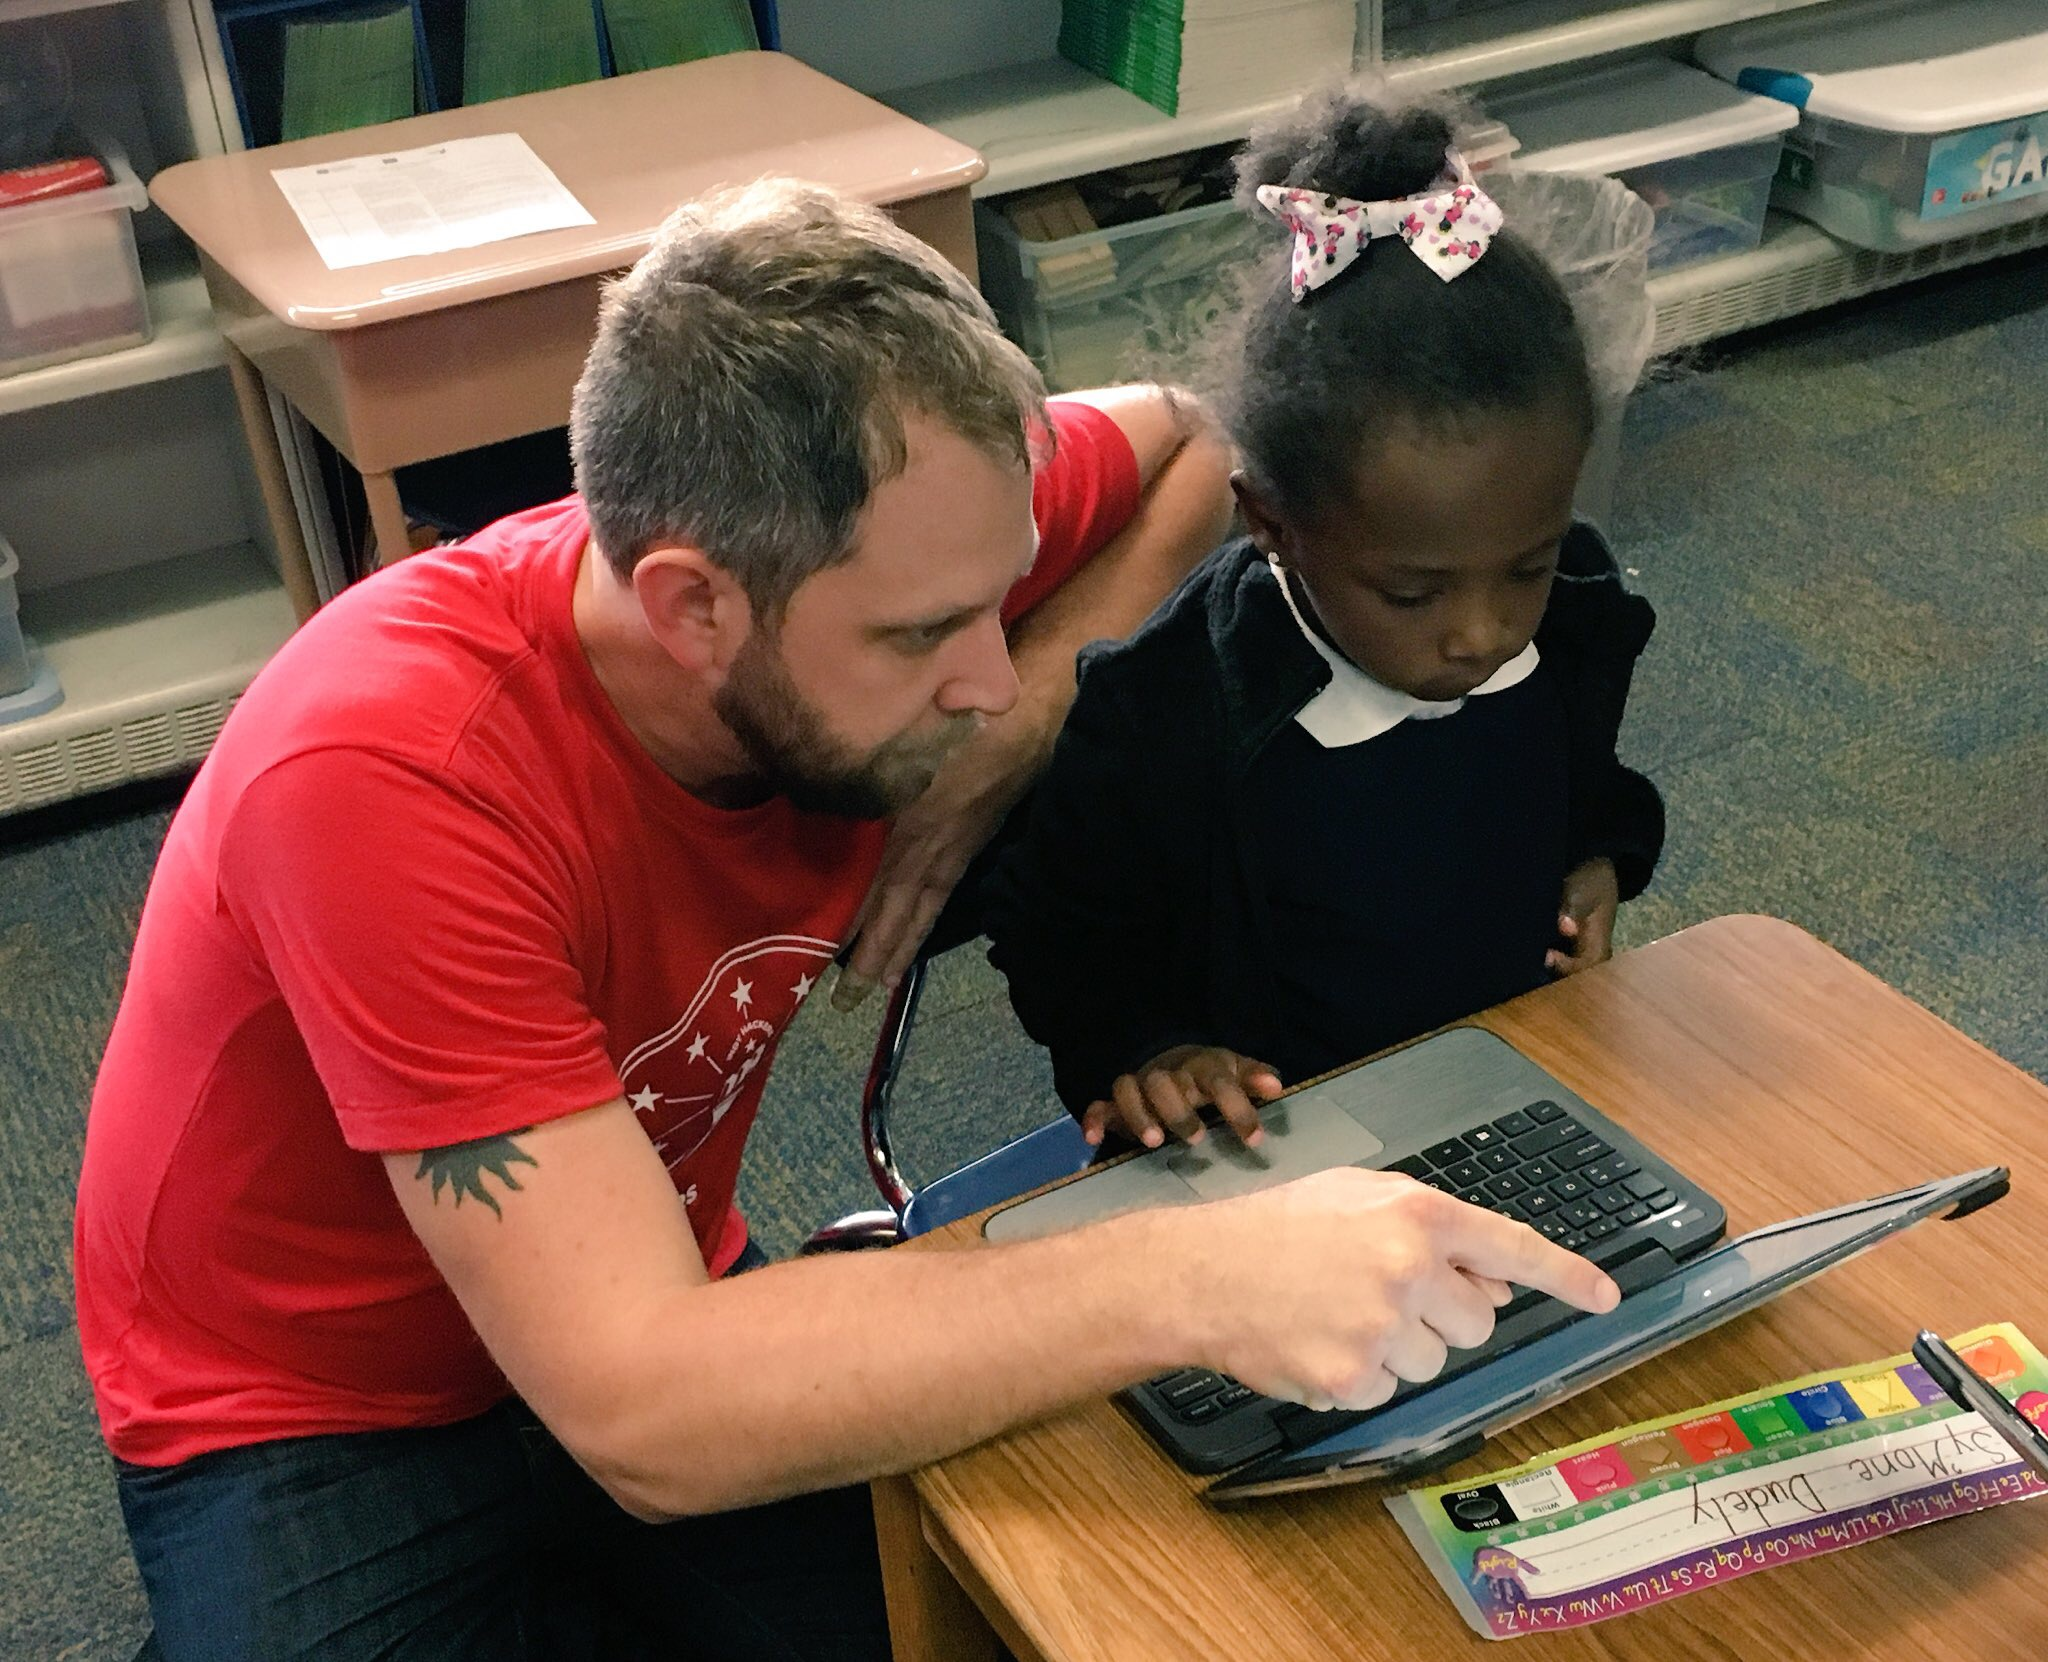 TPF4Y board member and DeveloperTown employee Jon Nolen works with a student at IPS School #55.